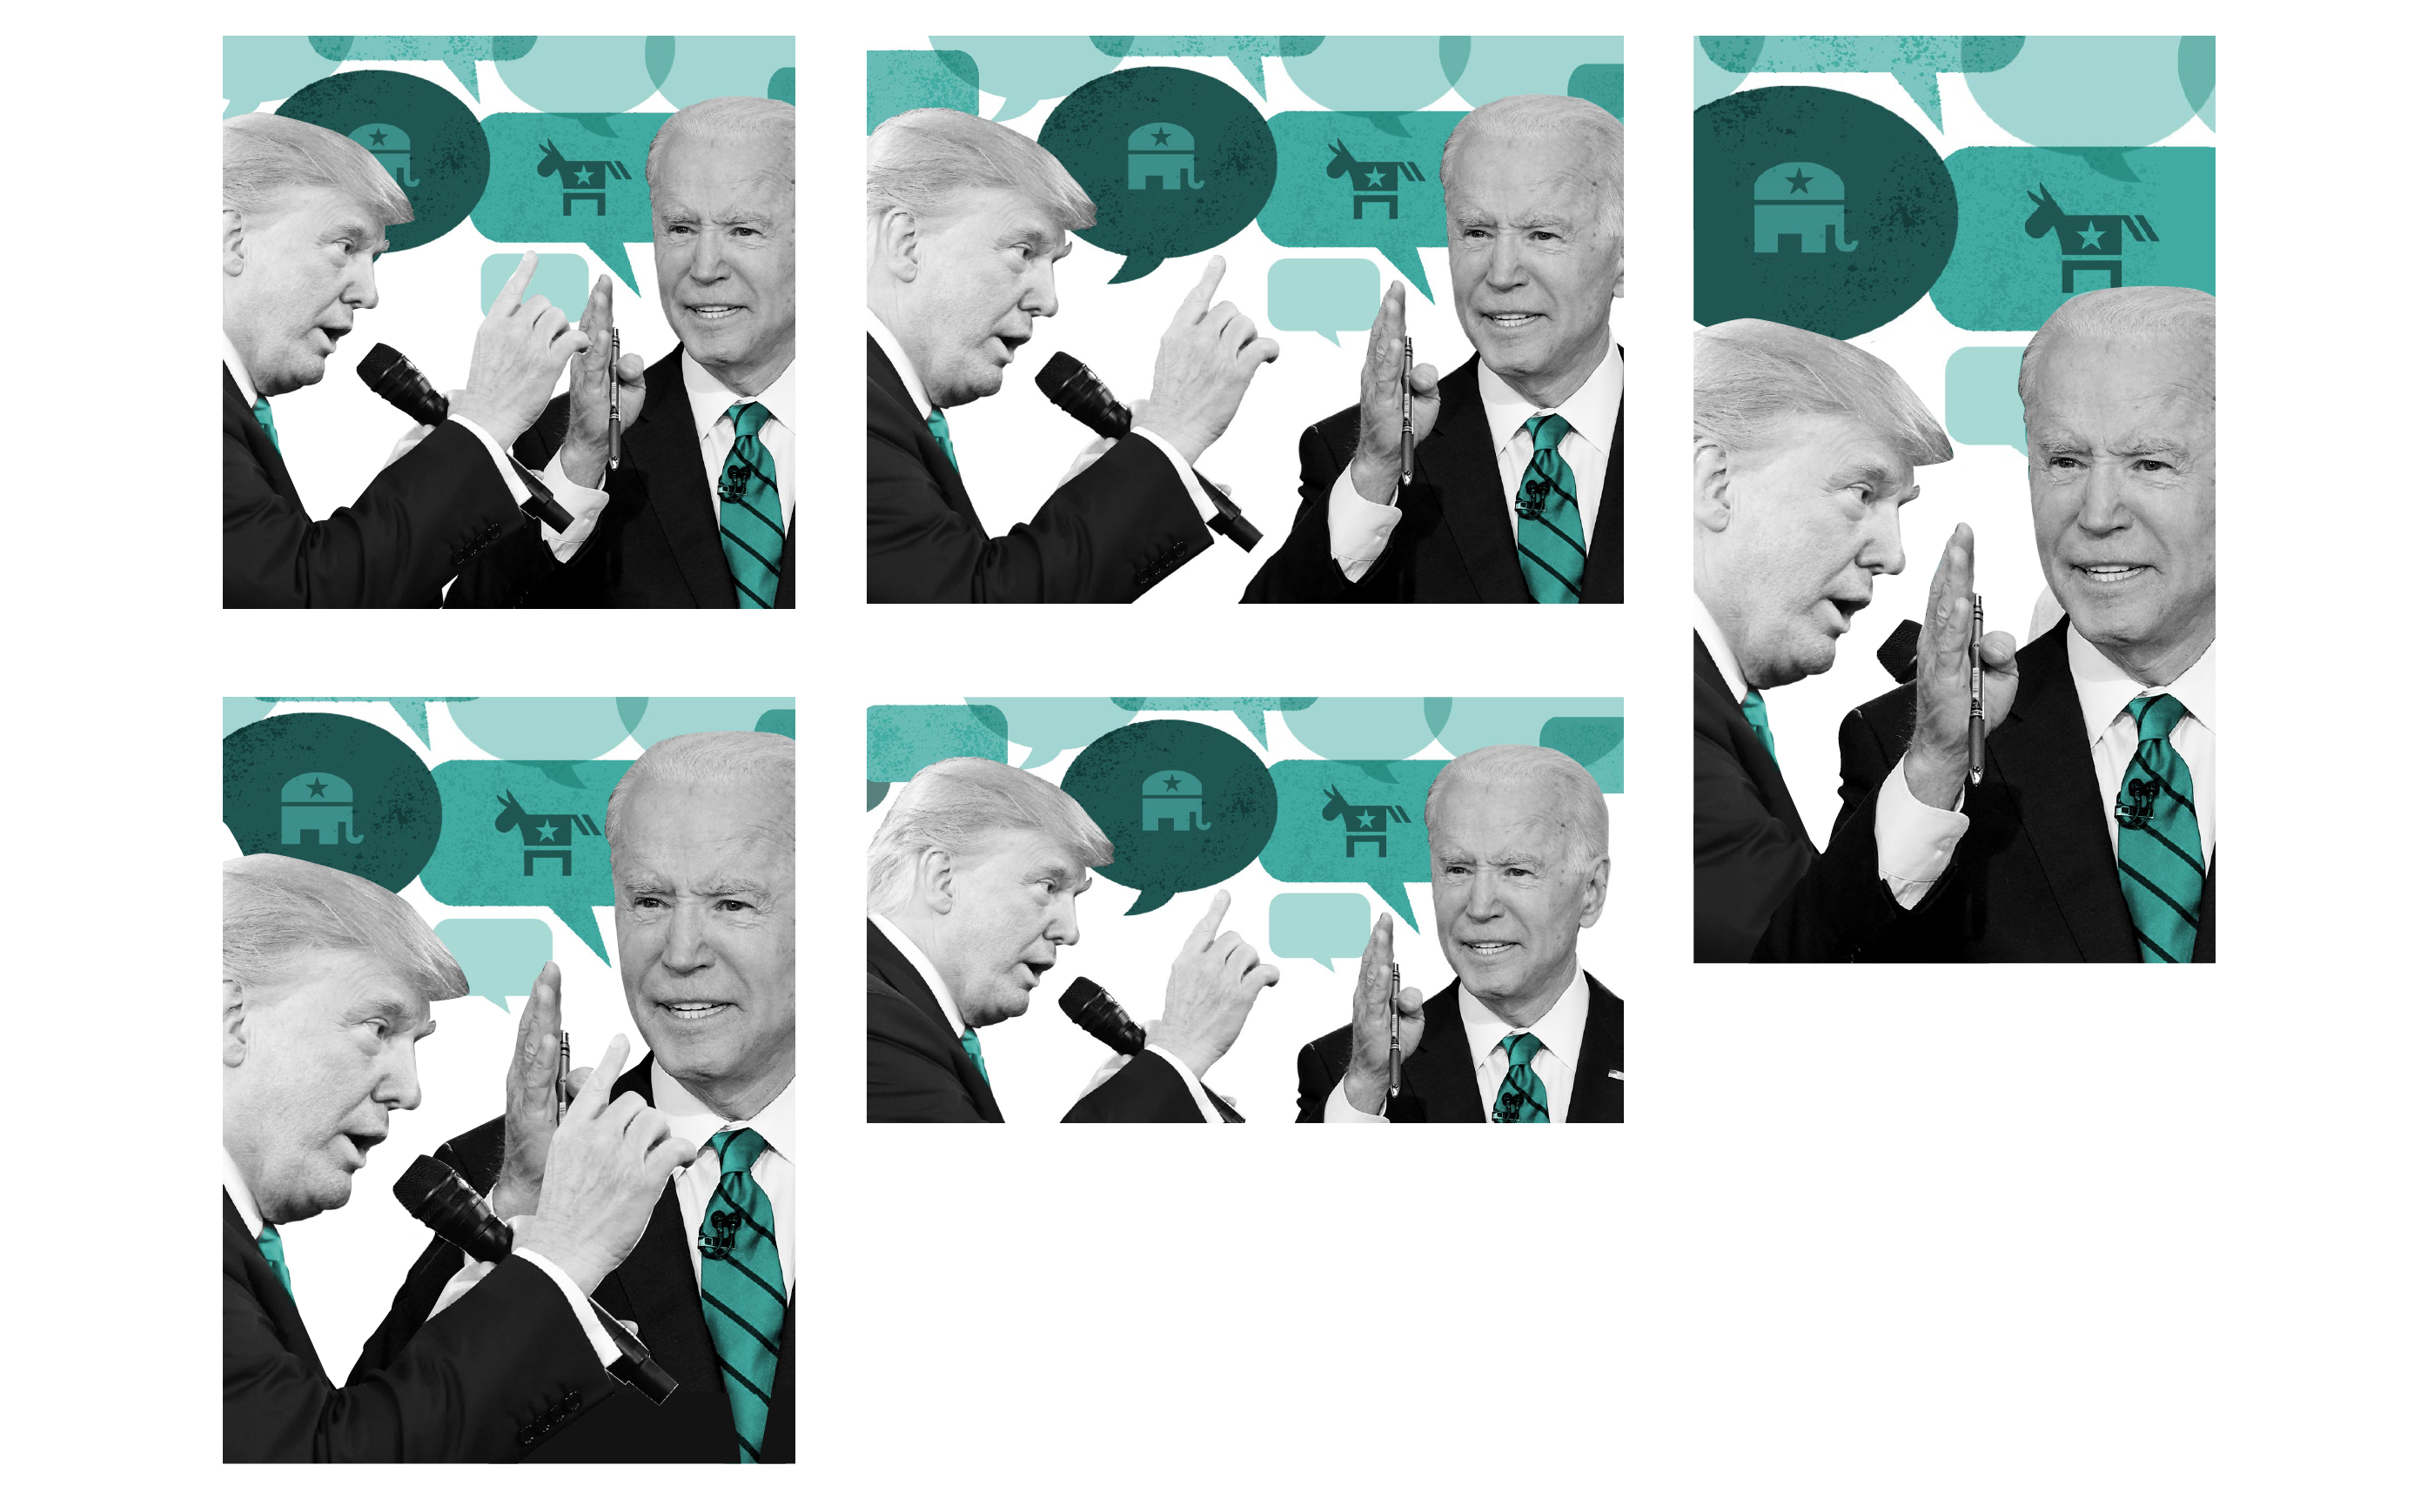 Who won the presidential debate? Not voters with arguments, attacks, and little substance